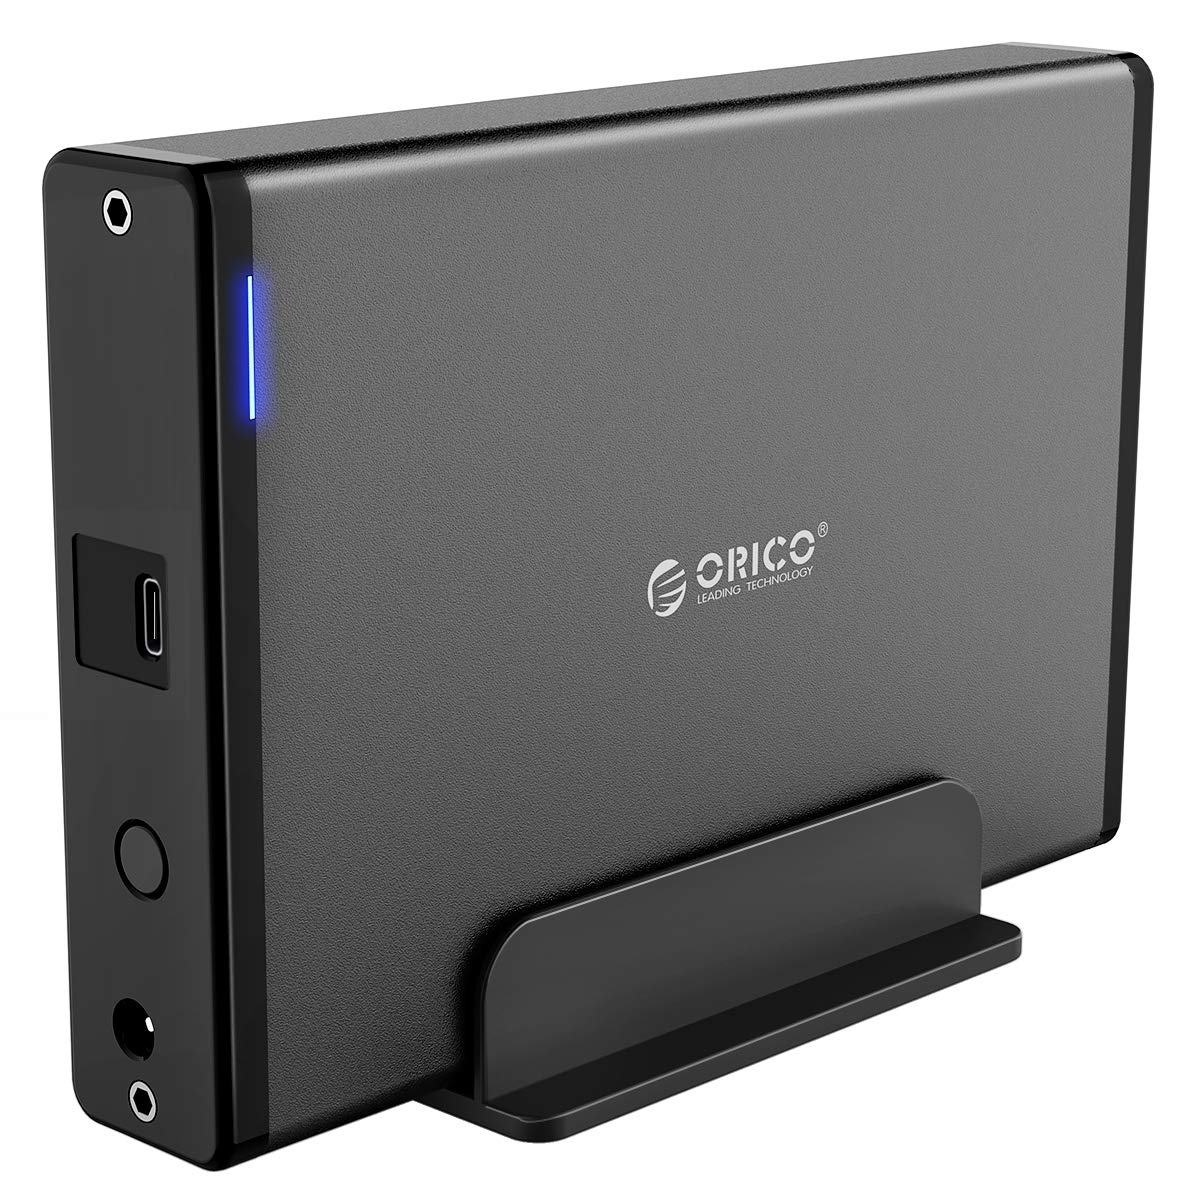 ORICO Aluminum 3.5 inch Type-C External Hard Drive Enclosure for 3.5 inch SATA HDD/SSD [Support 16TB & UASP]